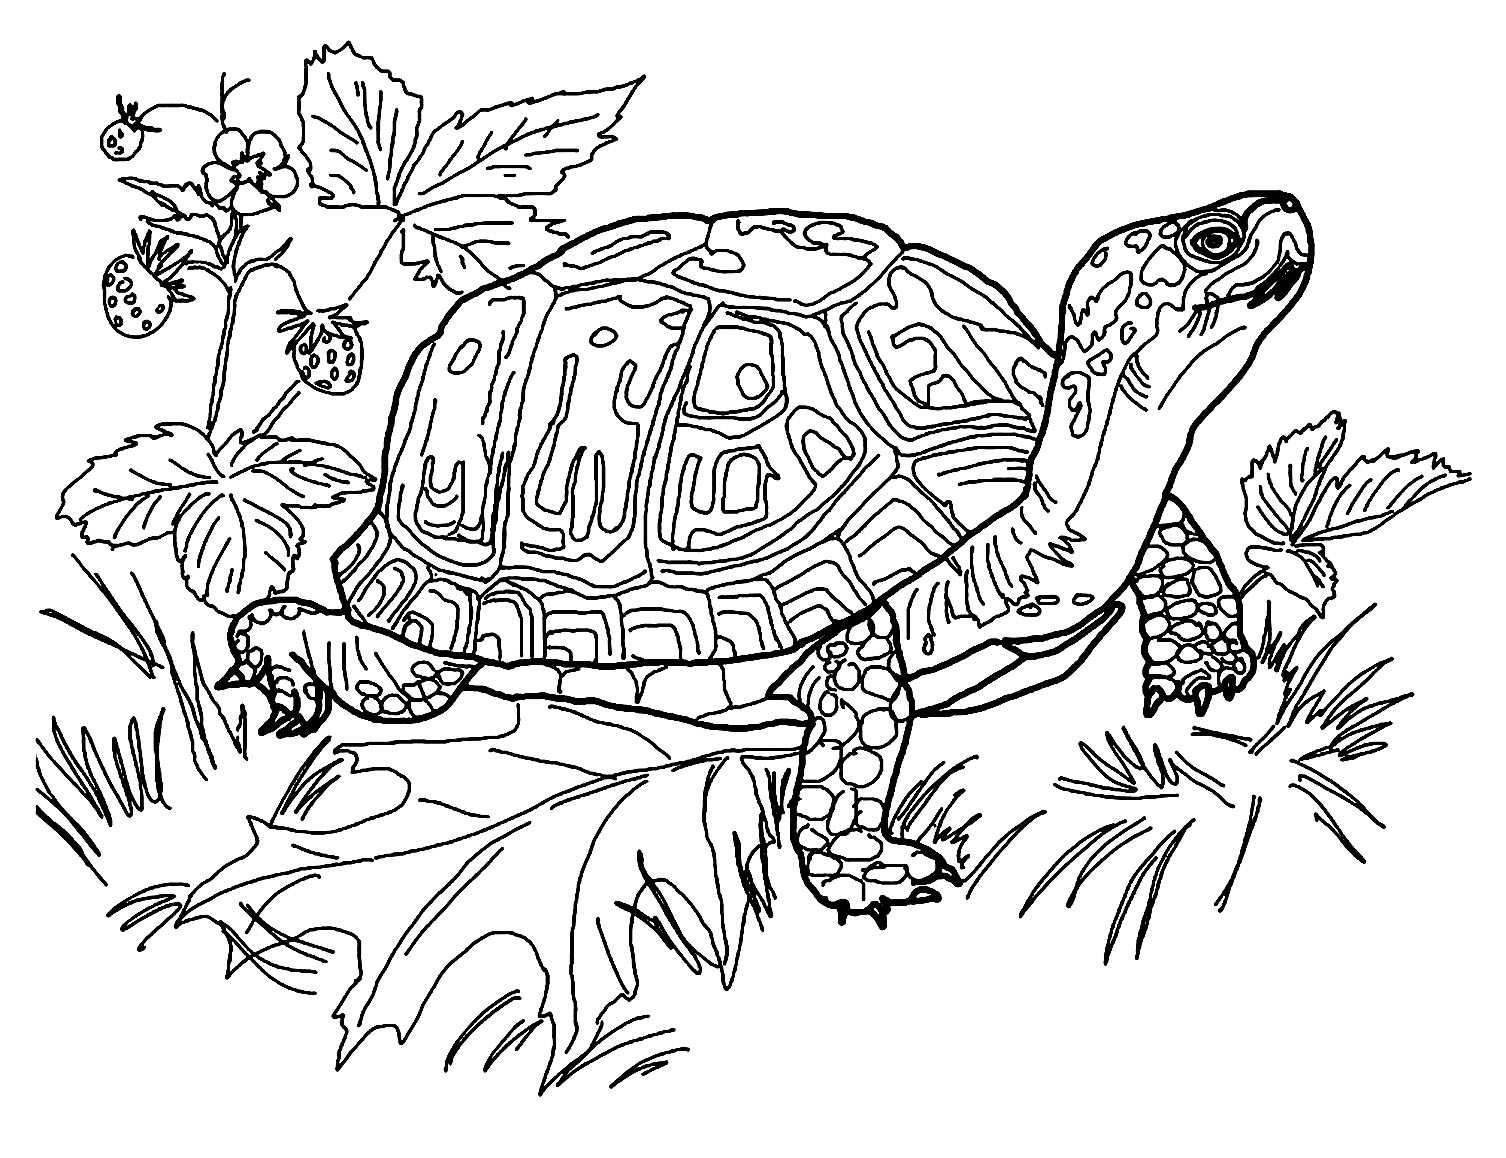 tortoise coloring page free turtle coloring pages for adults printable to tortoise coloring page